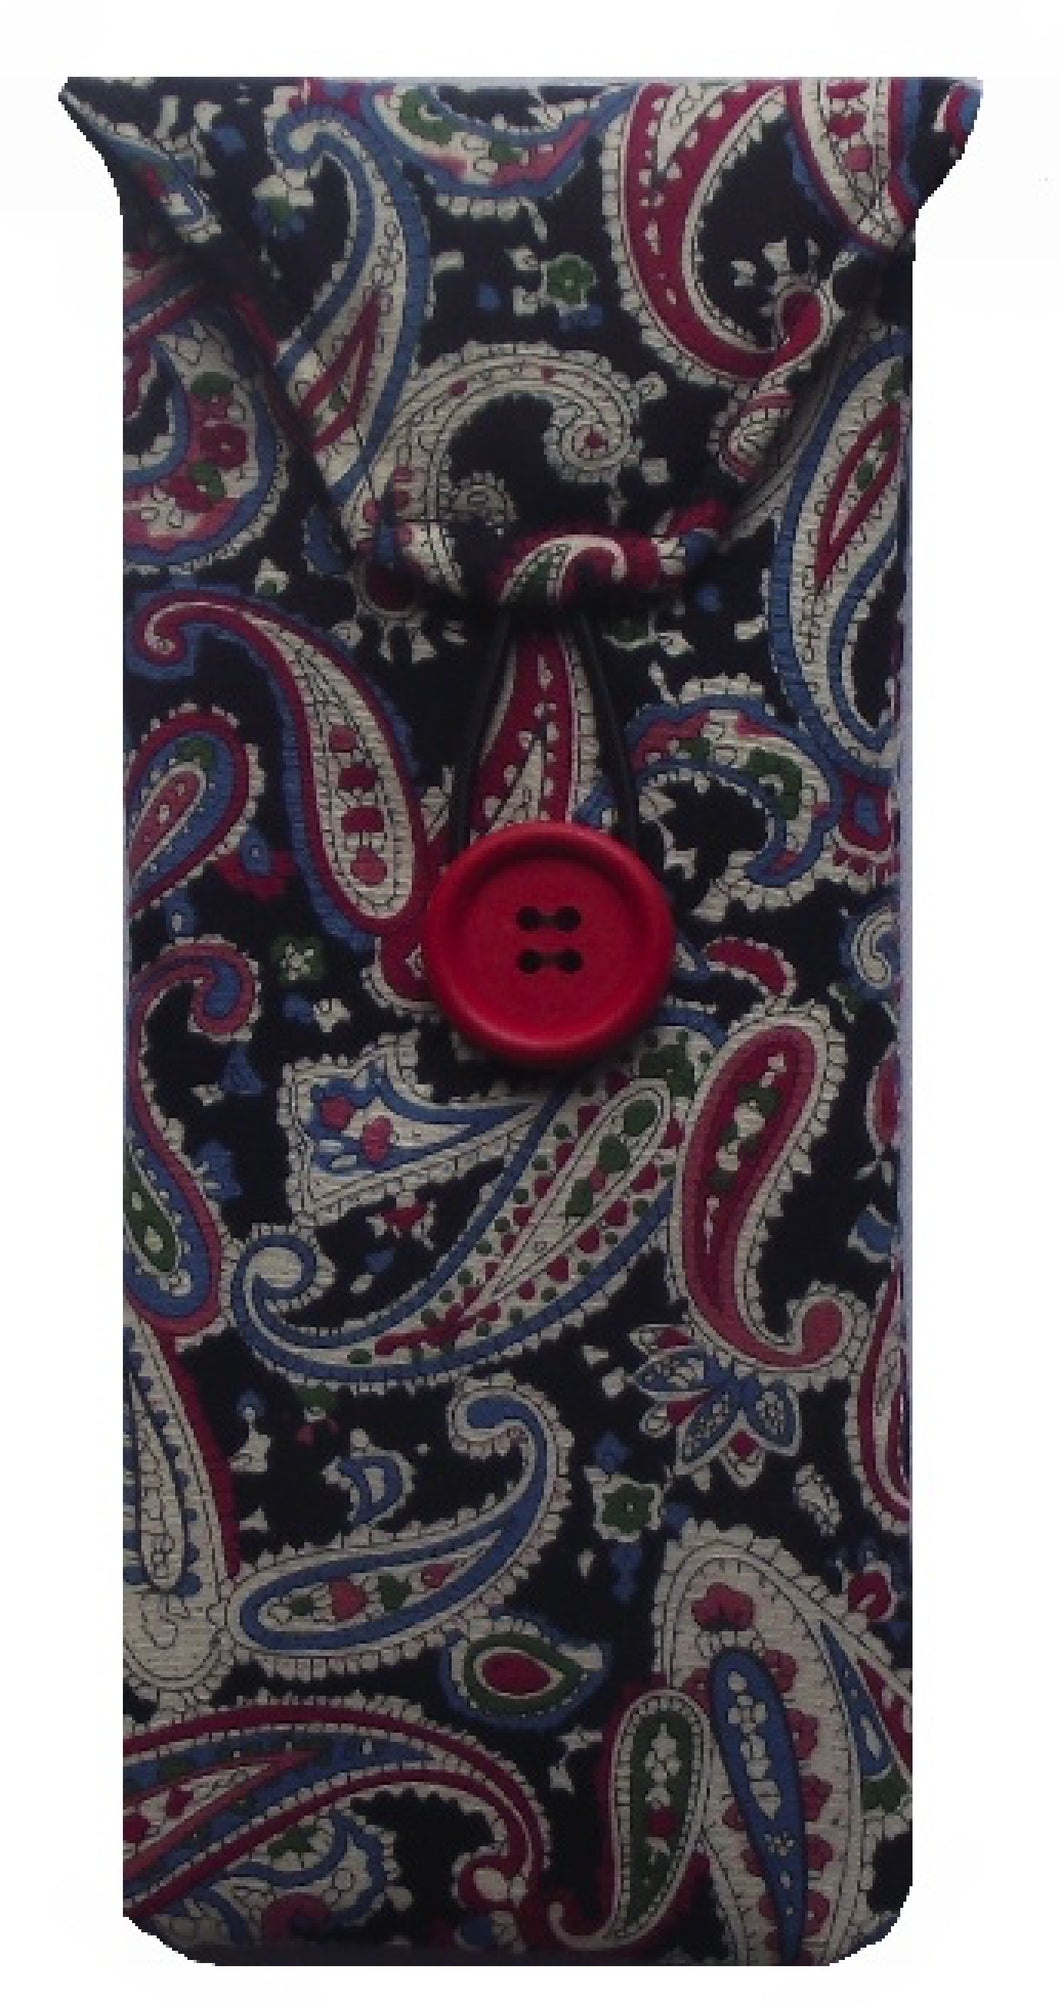 Black Paisley Print Glasses Case - Miss Pretty London UK Limited